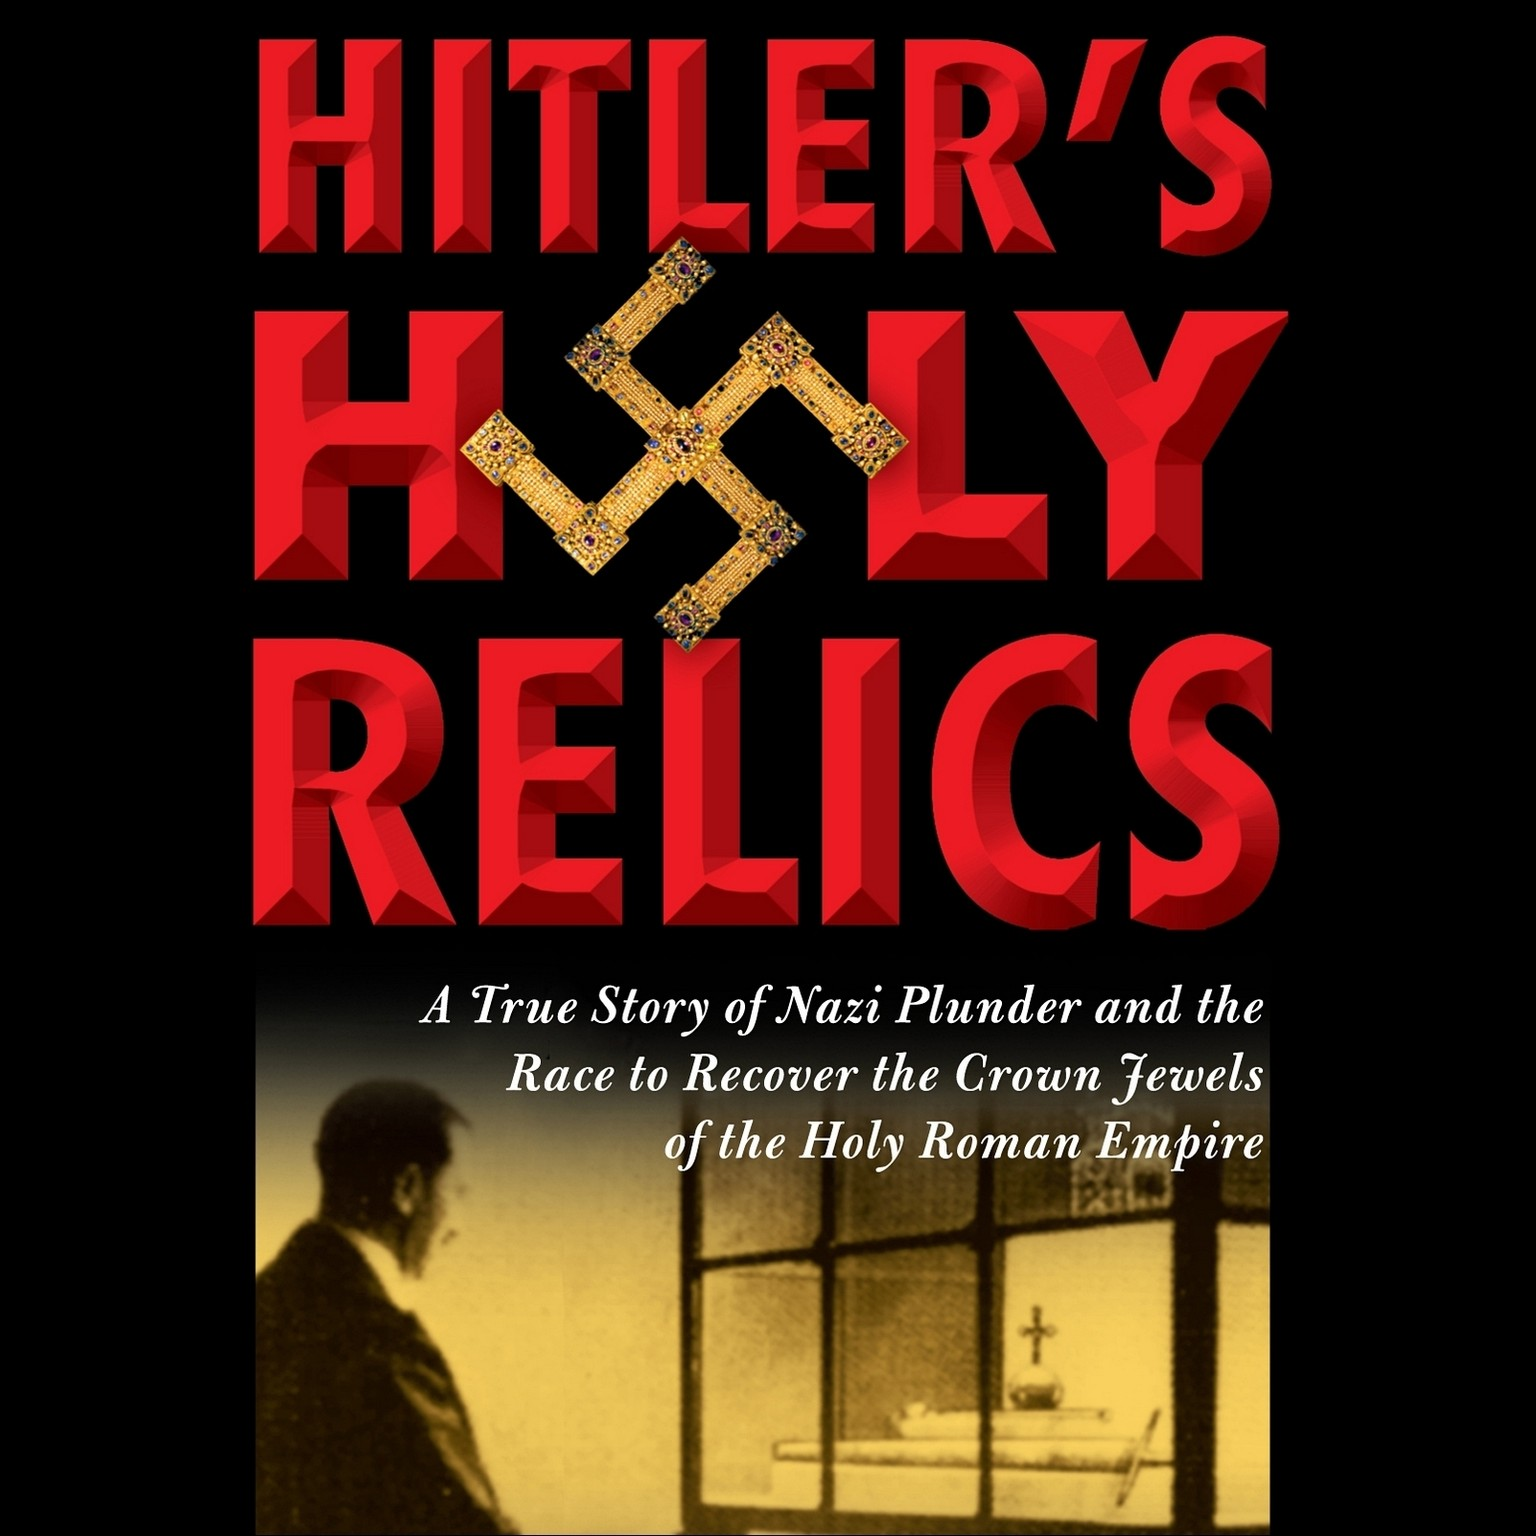 Printable Hitler's Holy Relics: A True Story of Nazi Plunder and the Race to Recover the Crown Jewels of the Holy Roman Empire Audiobook Cover Art